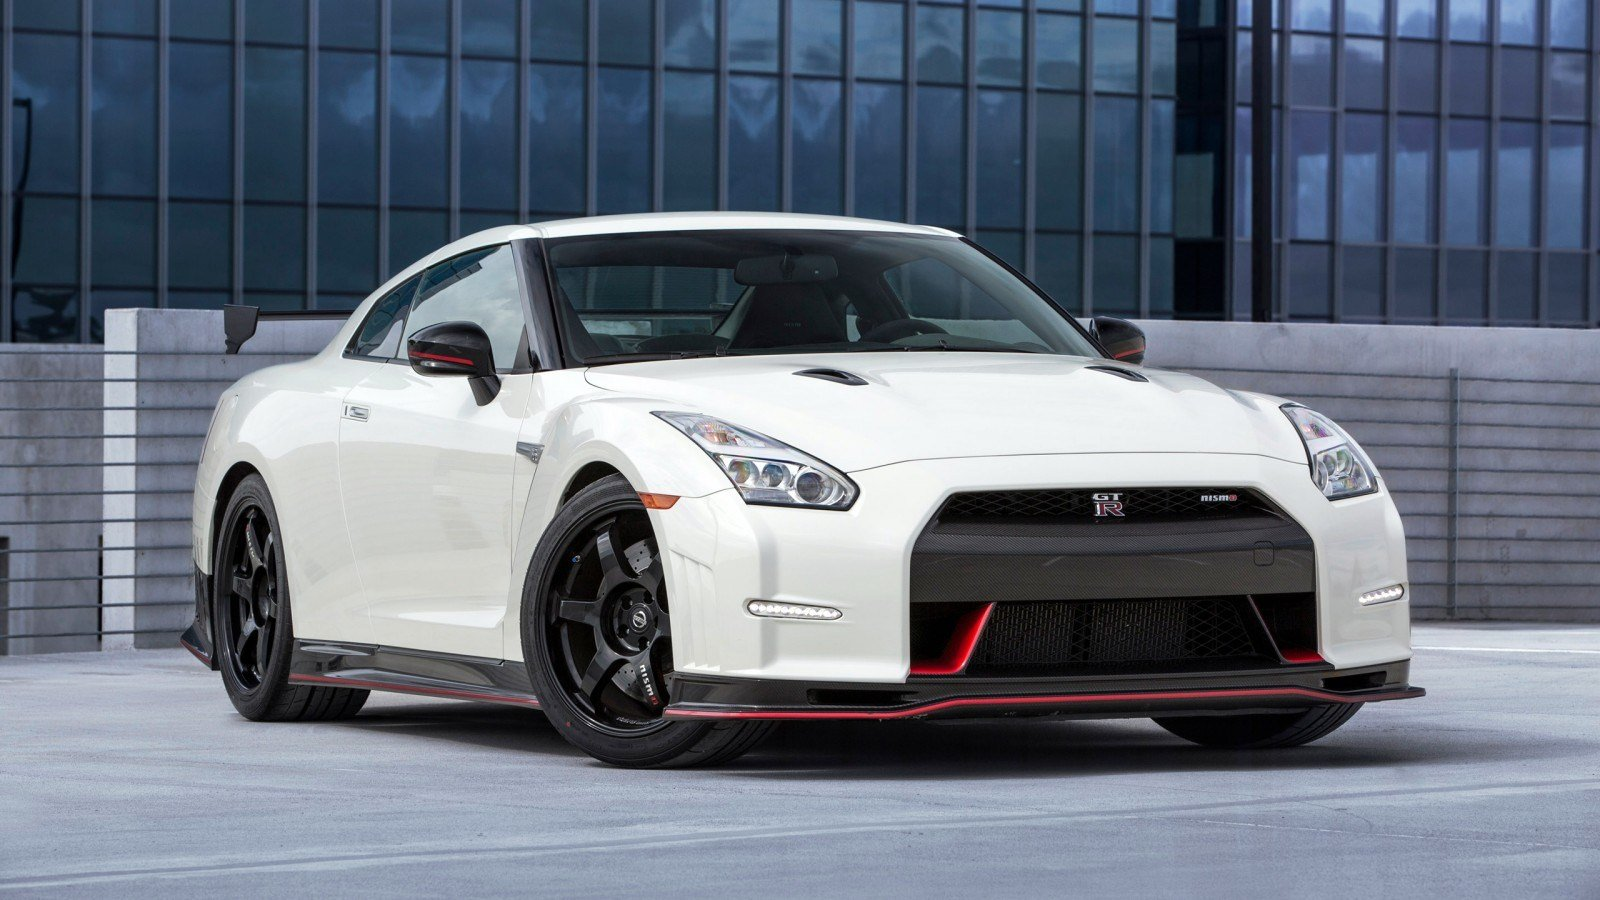 New Nissan Gt R Nismo 2015 Wallpaper Hd Car Wallpapers Id On This Month